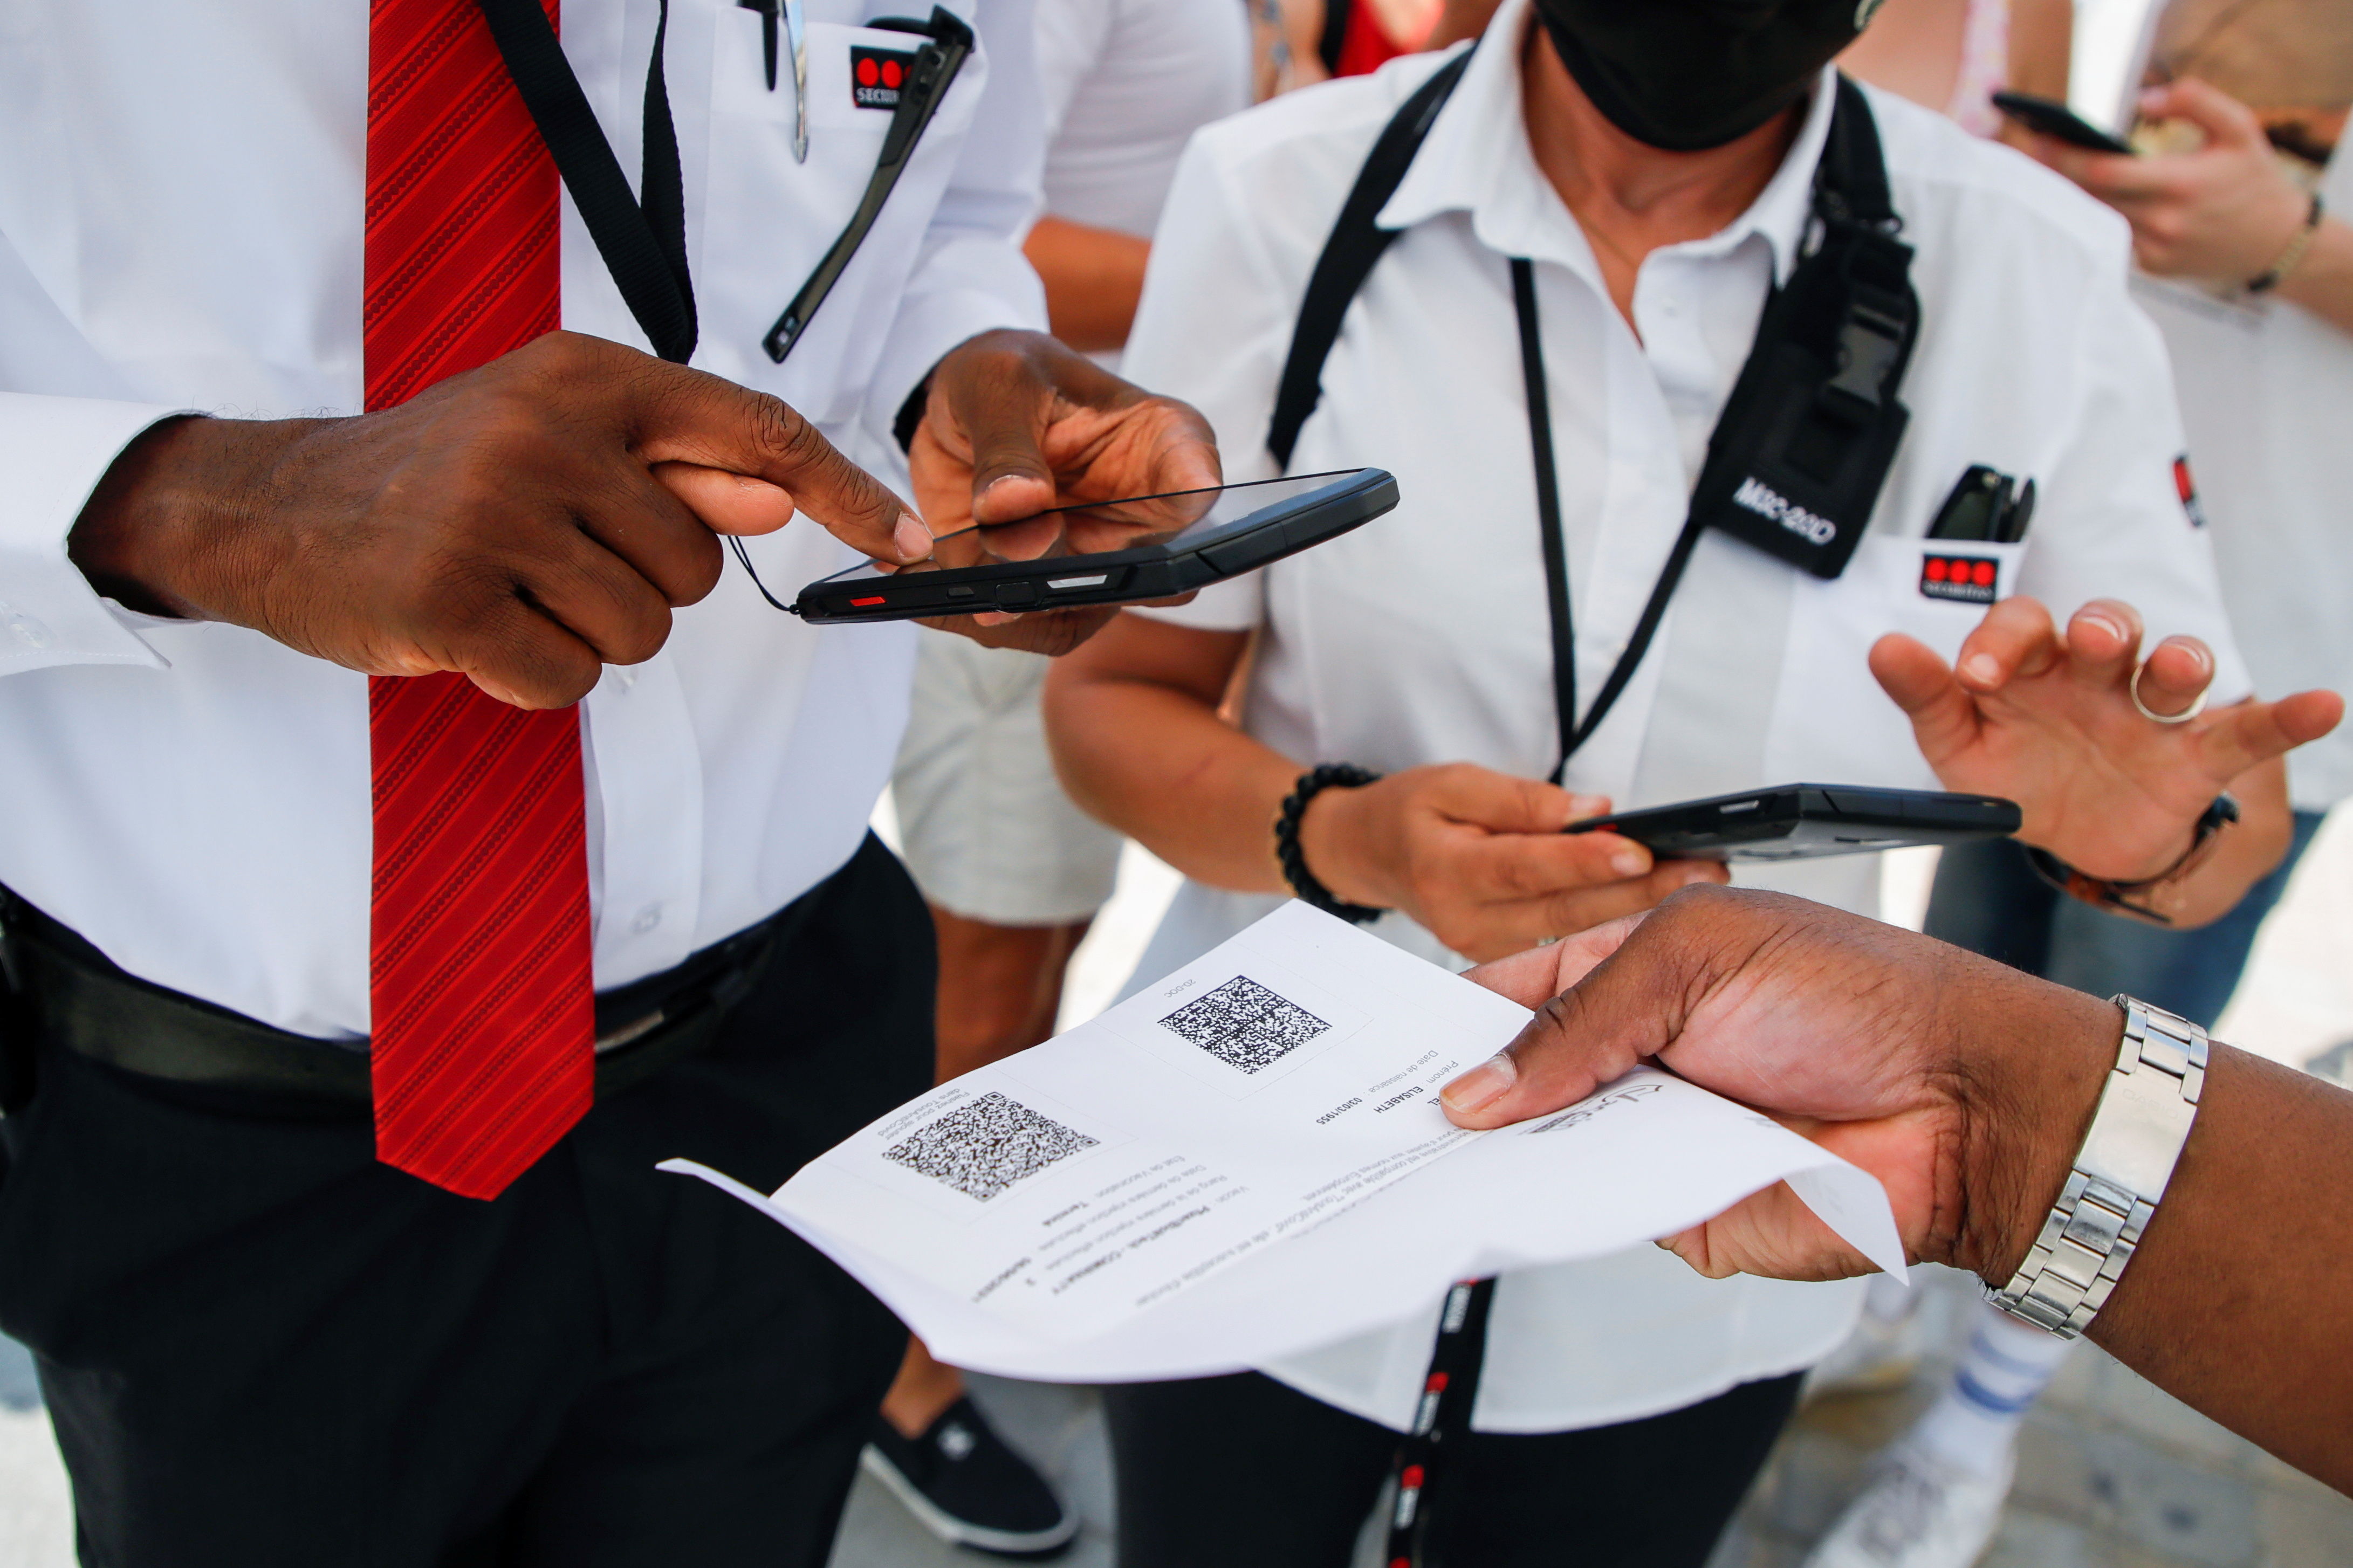 Security agents check visitors' health passes in front of the Louvre museum entrance amid the coronavirus disease (COVID-19) outbreak in Paris, France, July 21, 2021. REUTERS/Sarah Meyssonnier